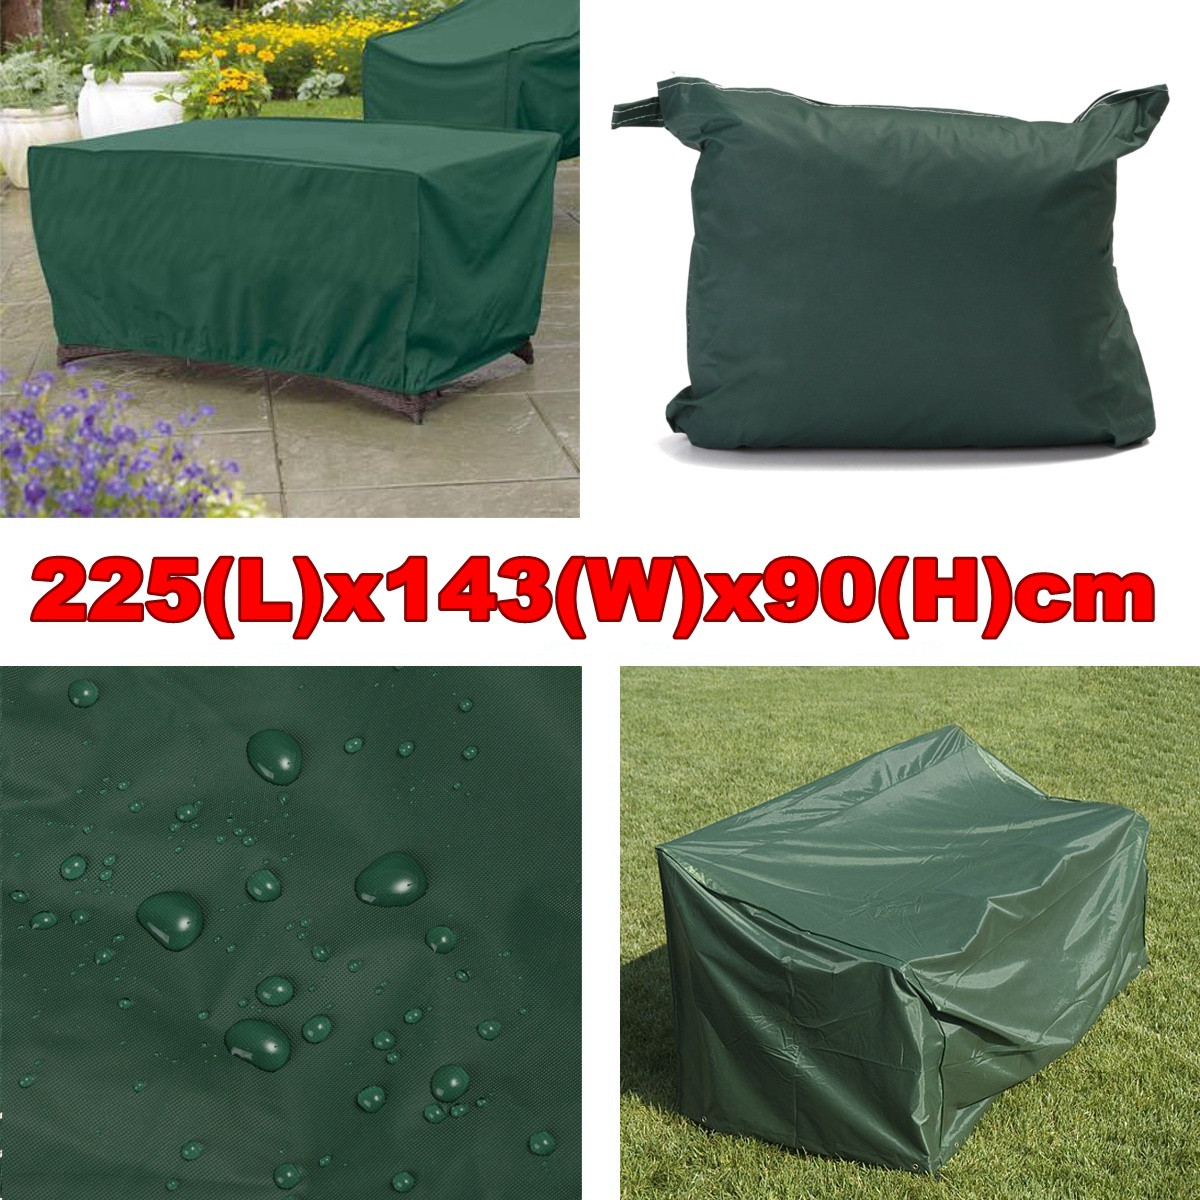 Motorcycle Outdoor Furniture Cover Waterproof Patio Table Chair Rain Snow Dust Protector